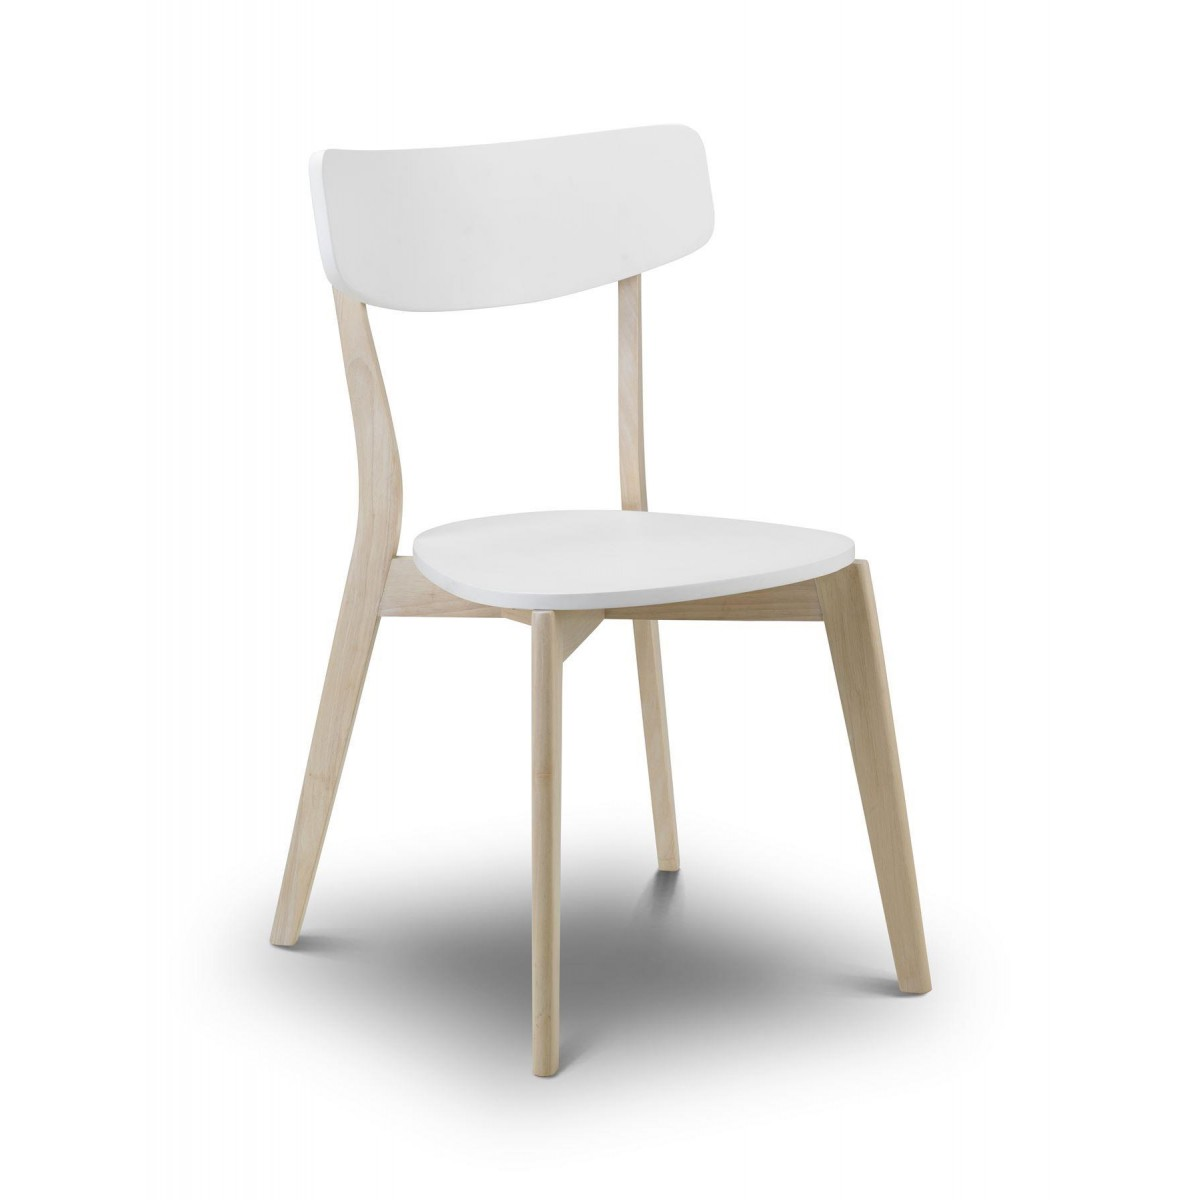 Outstanding Casa Contemporary Dining Chair Caraccident5 Cool Chair Designs And Ideas Caraccident5Info